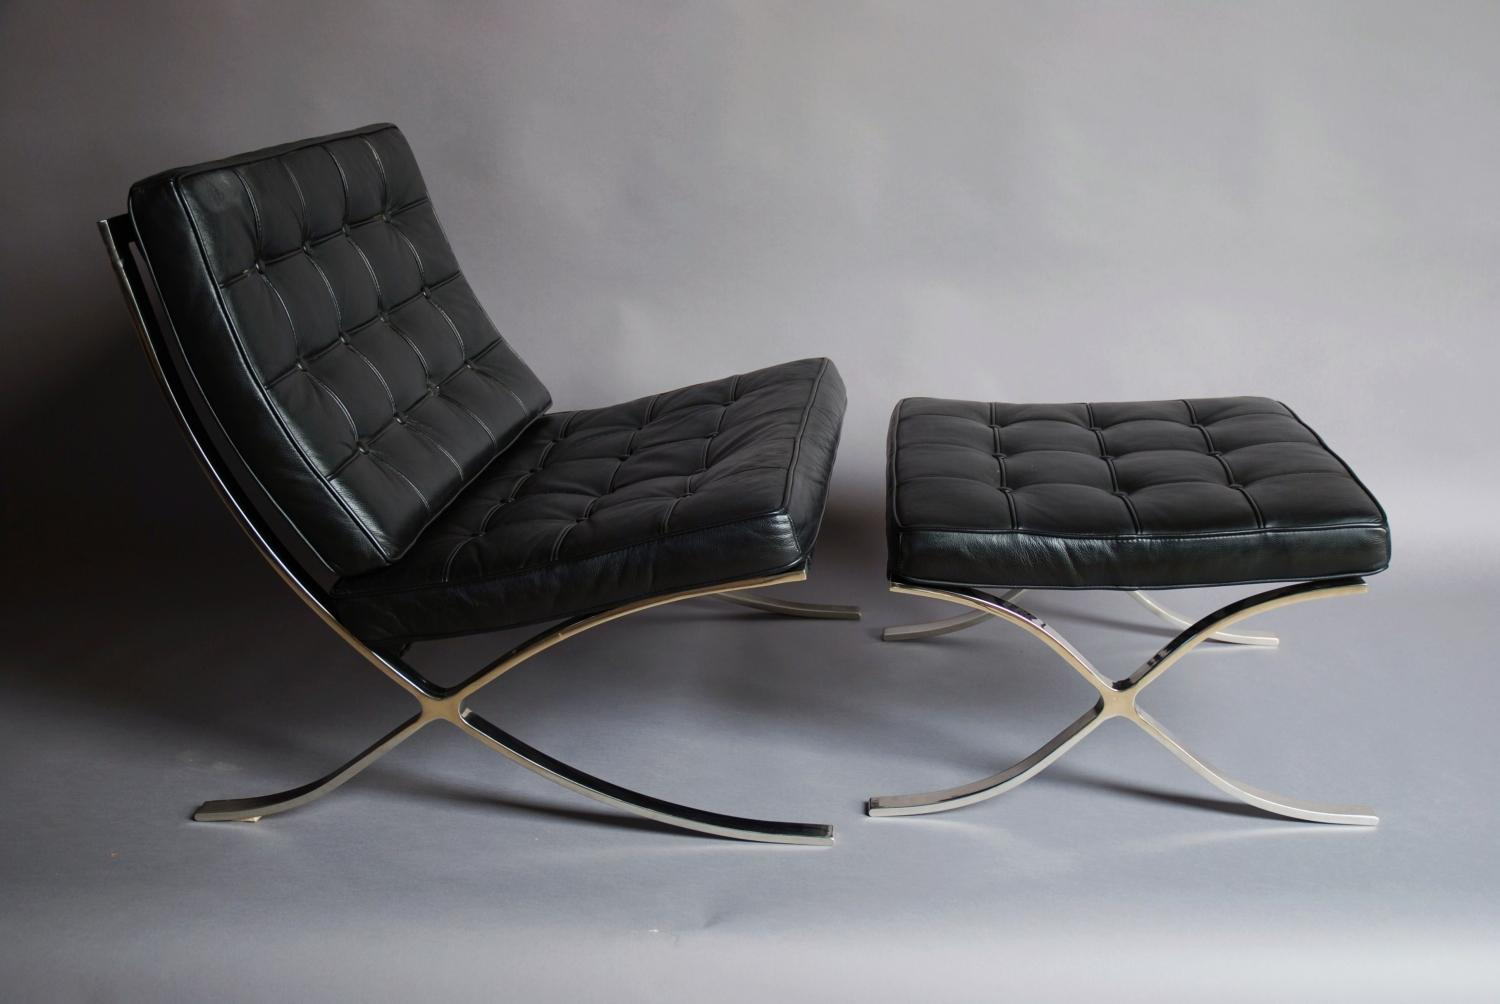 Barcelona Chair & stool in black leather